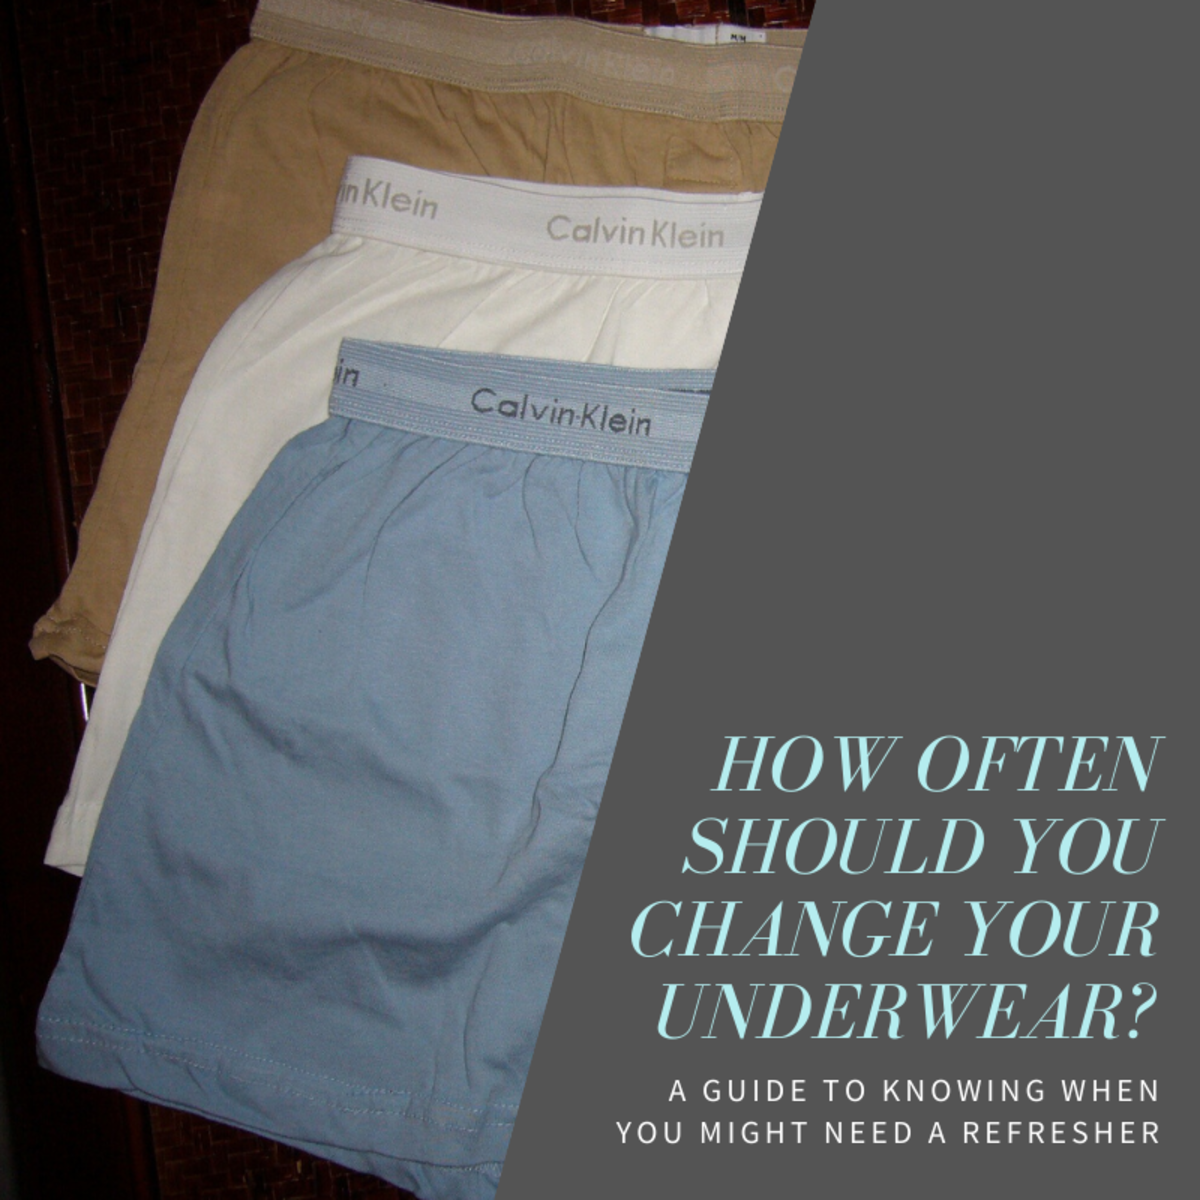 This article will break down what factors to consider when thinking about how often you should change your underwear.